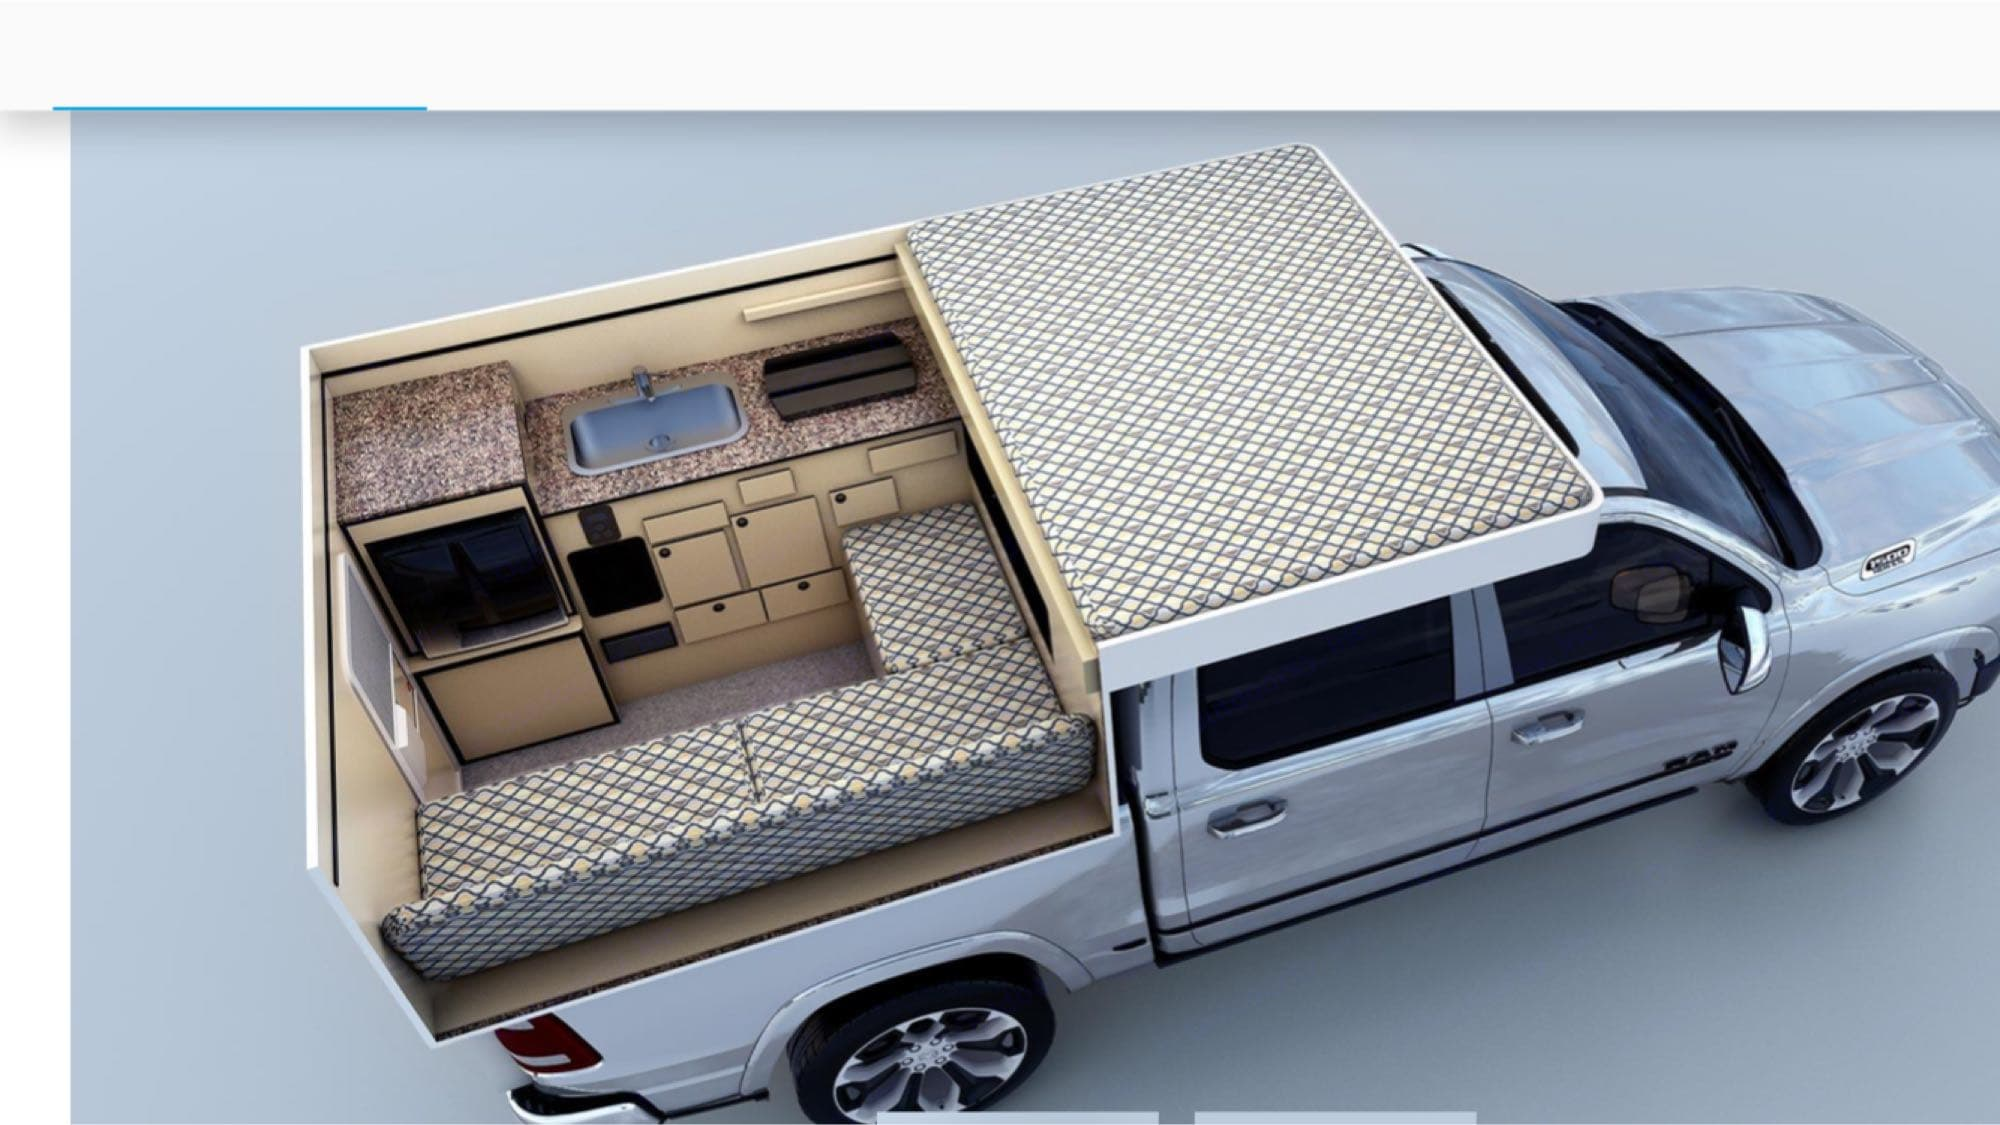 interior layout example..couch fold out to make lower bed or sleeping area with out pop up, or pop top up and have the upper bed and lower bed. 20 gallons of water, two propane tanks for 2 burner stove and heater. plus a refrigerator!. Four Wheel Campers Hawk 2019